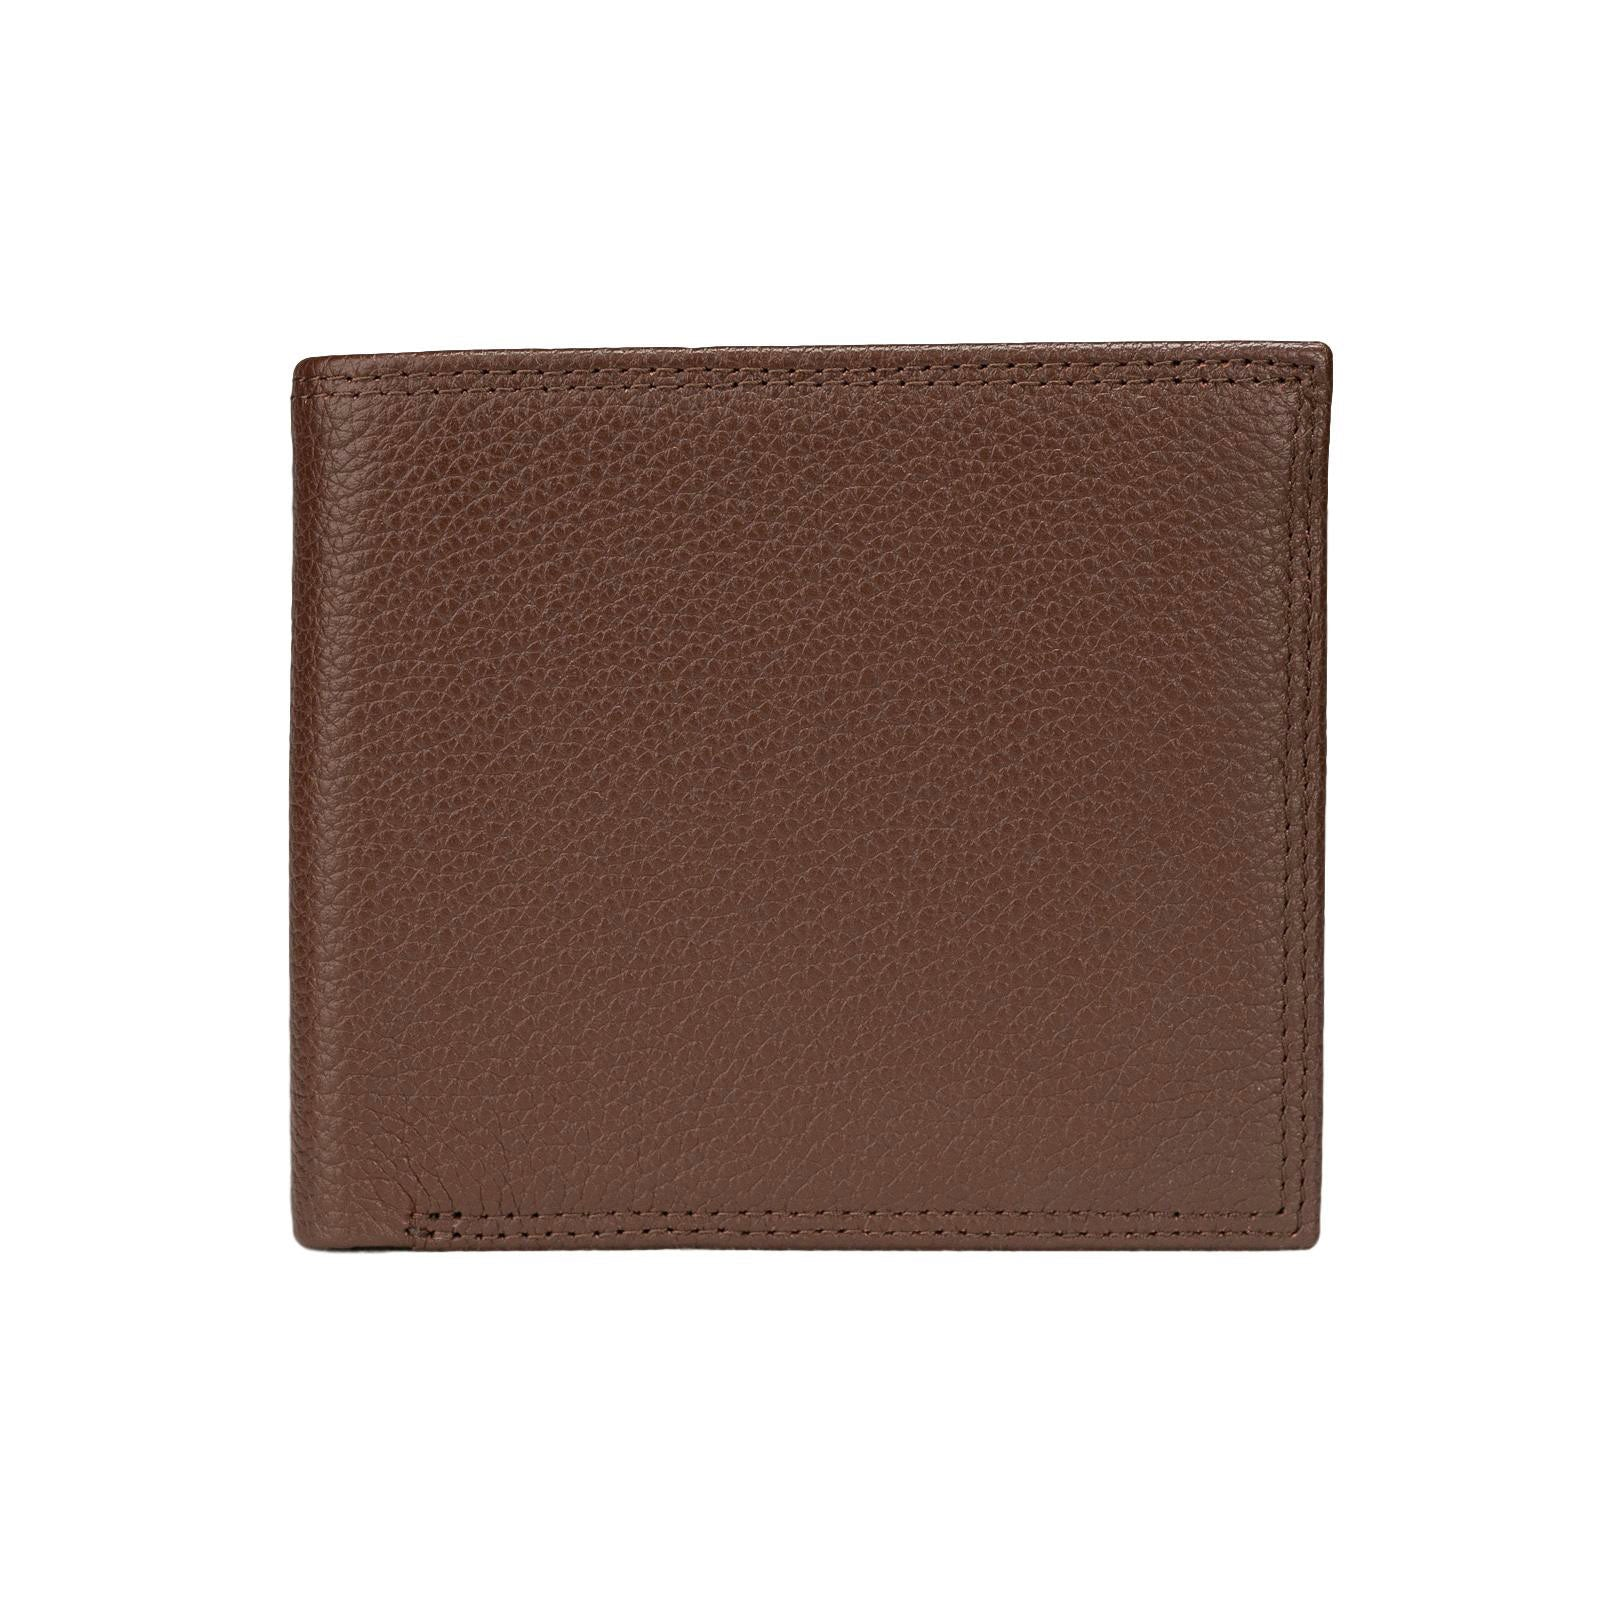 Mon Purse Pebbled Mens Bifold Wallet in Dark Brown